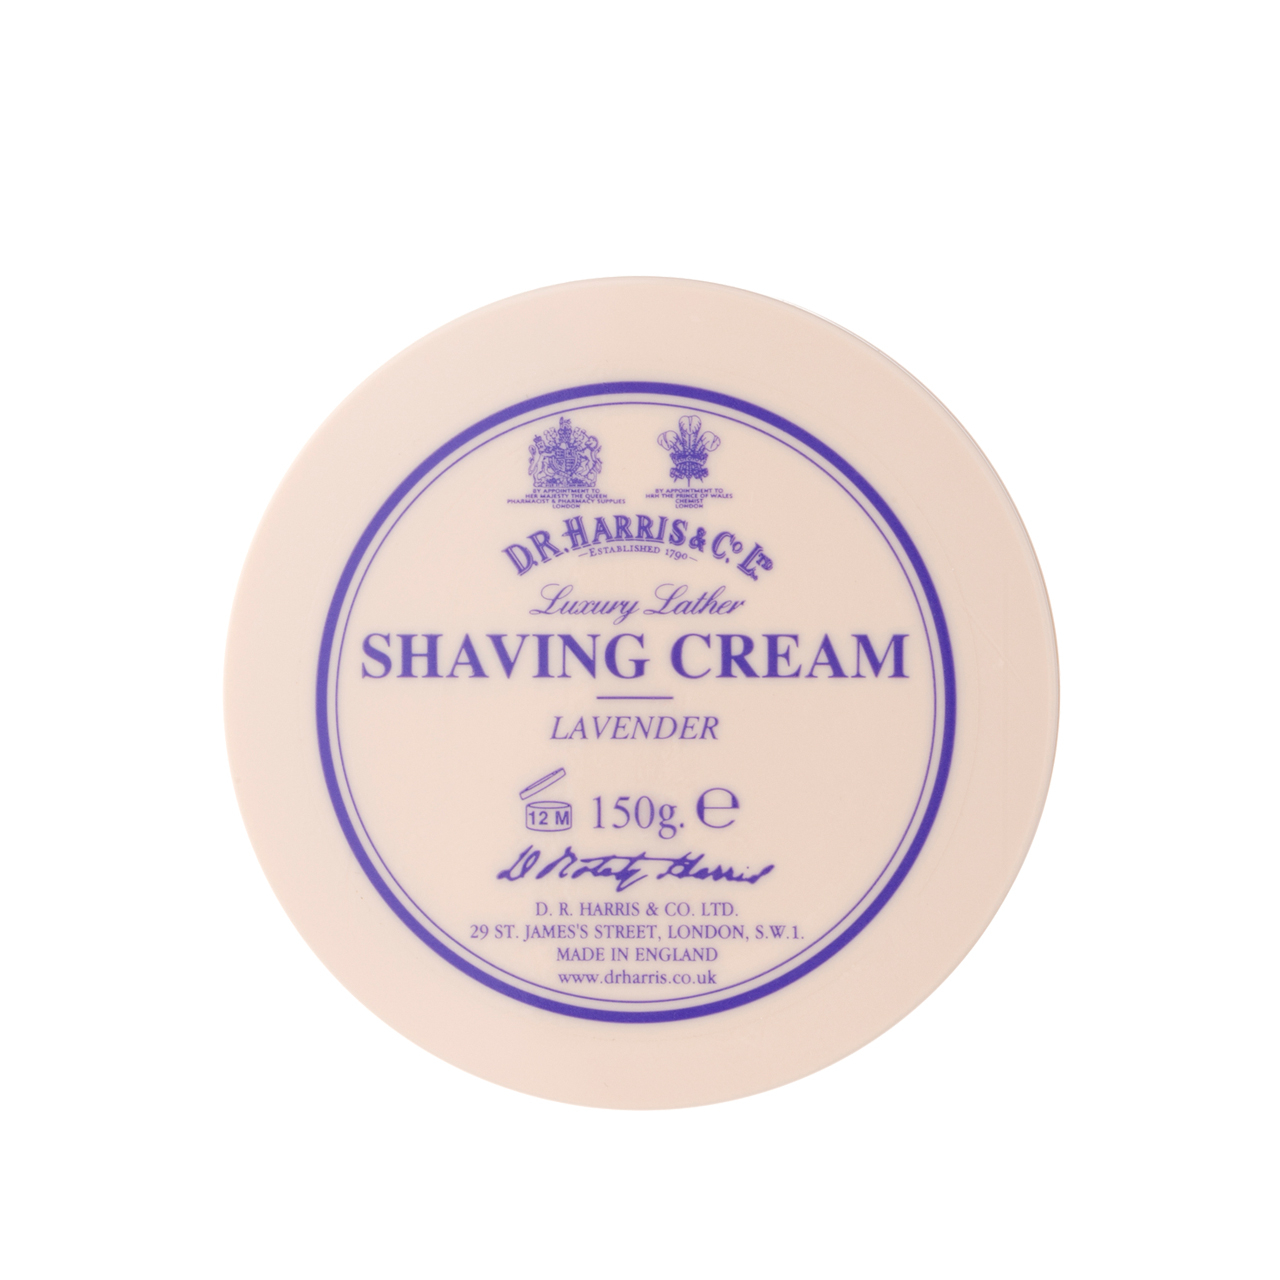 Lavender - Shaving Cream Bowl